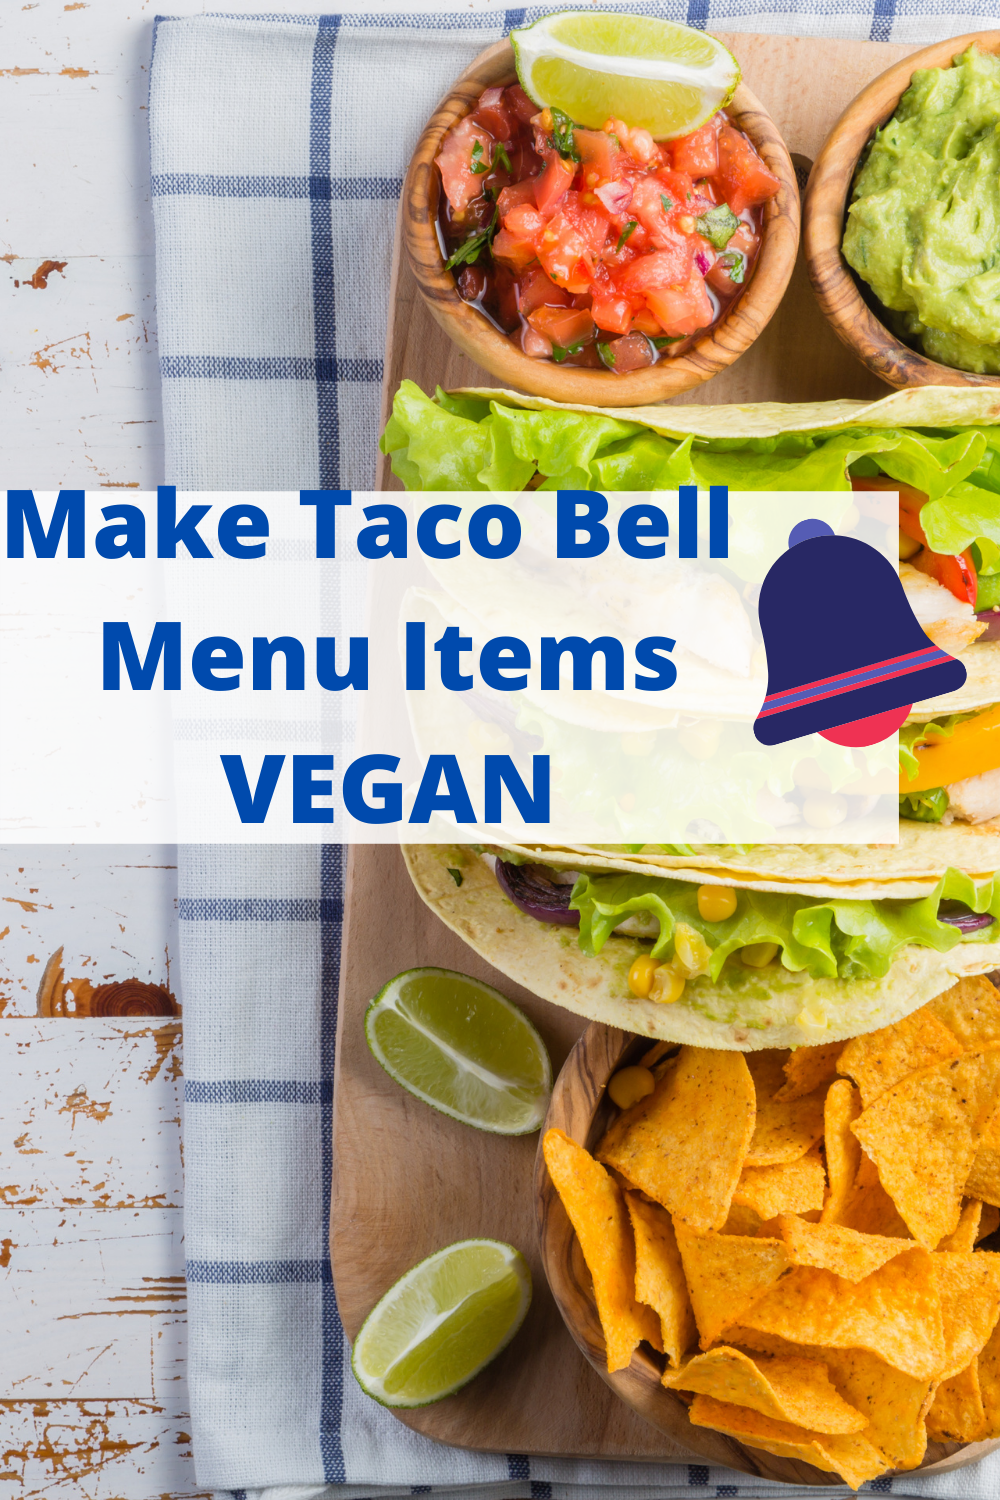 Make Taco Bell Menu Items Vegan Vegan Tacos Recipes In 2020 Vegan Tacos Recipes Plant Based Recipes Easy Clean Eating Tacos